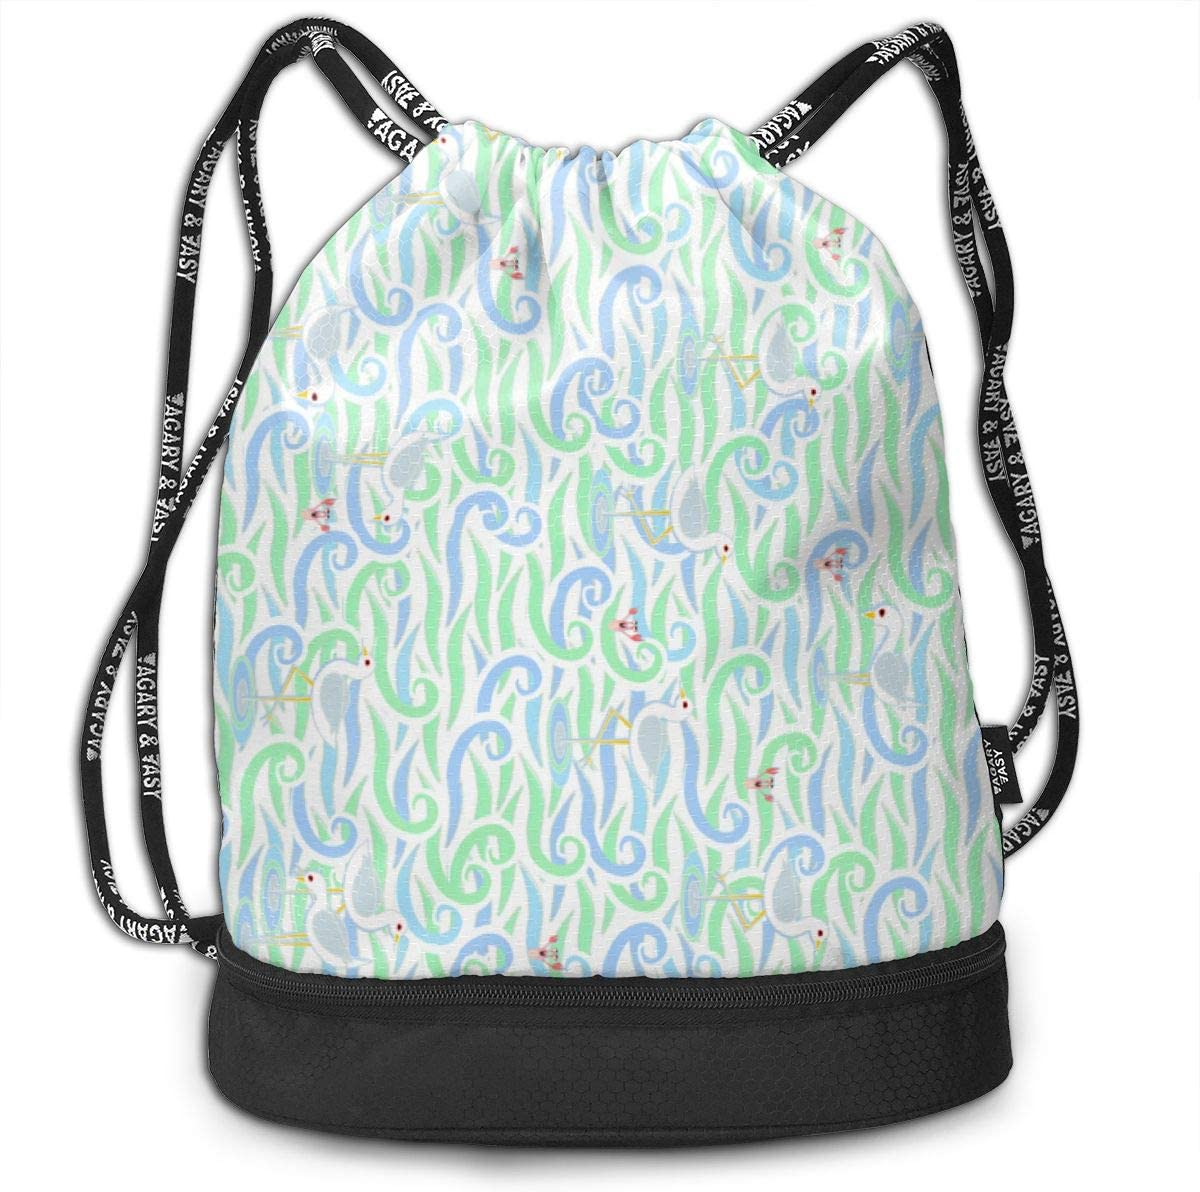 Turn90 You Cant Catch Me Railroad Orientation Drawstring Backpack Sports Athletic Gym Cinch Sack String Storage Bags for Hiking Travel Beach